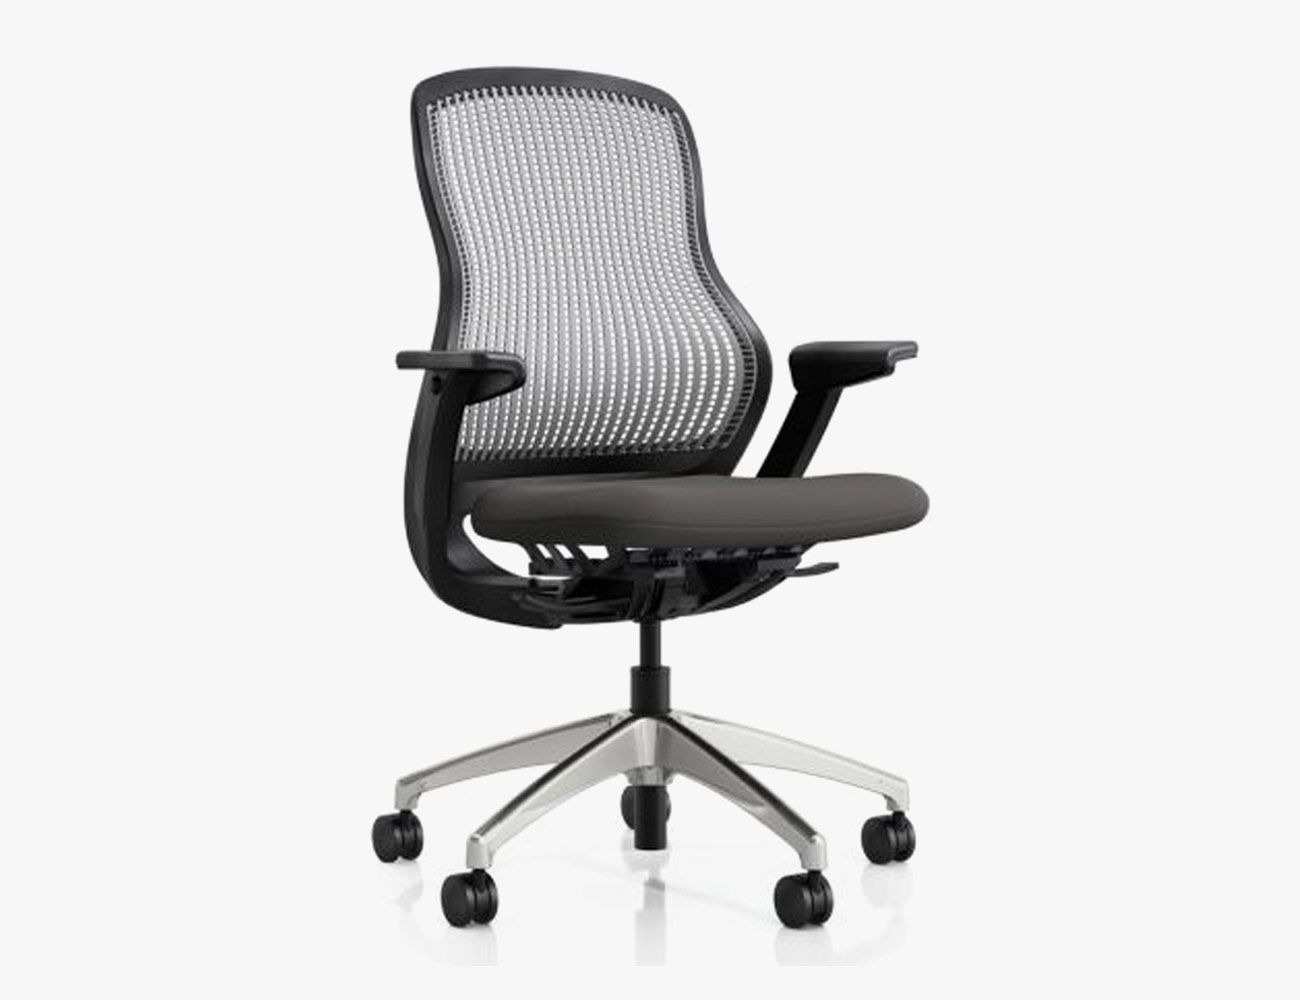 Best Office Chair Storiestrending Com In 2020 Best Office Chair Cool Desk Chairs Best Ergonomic Office Chair